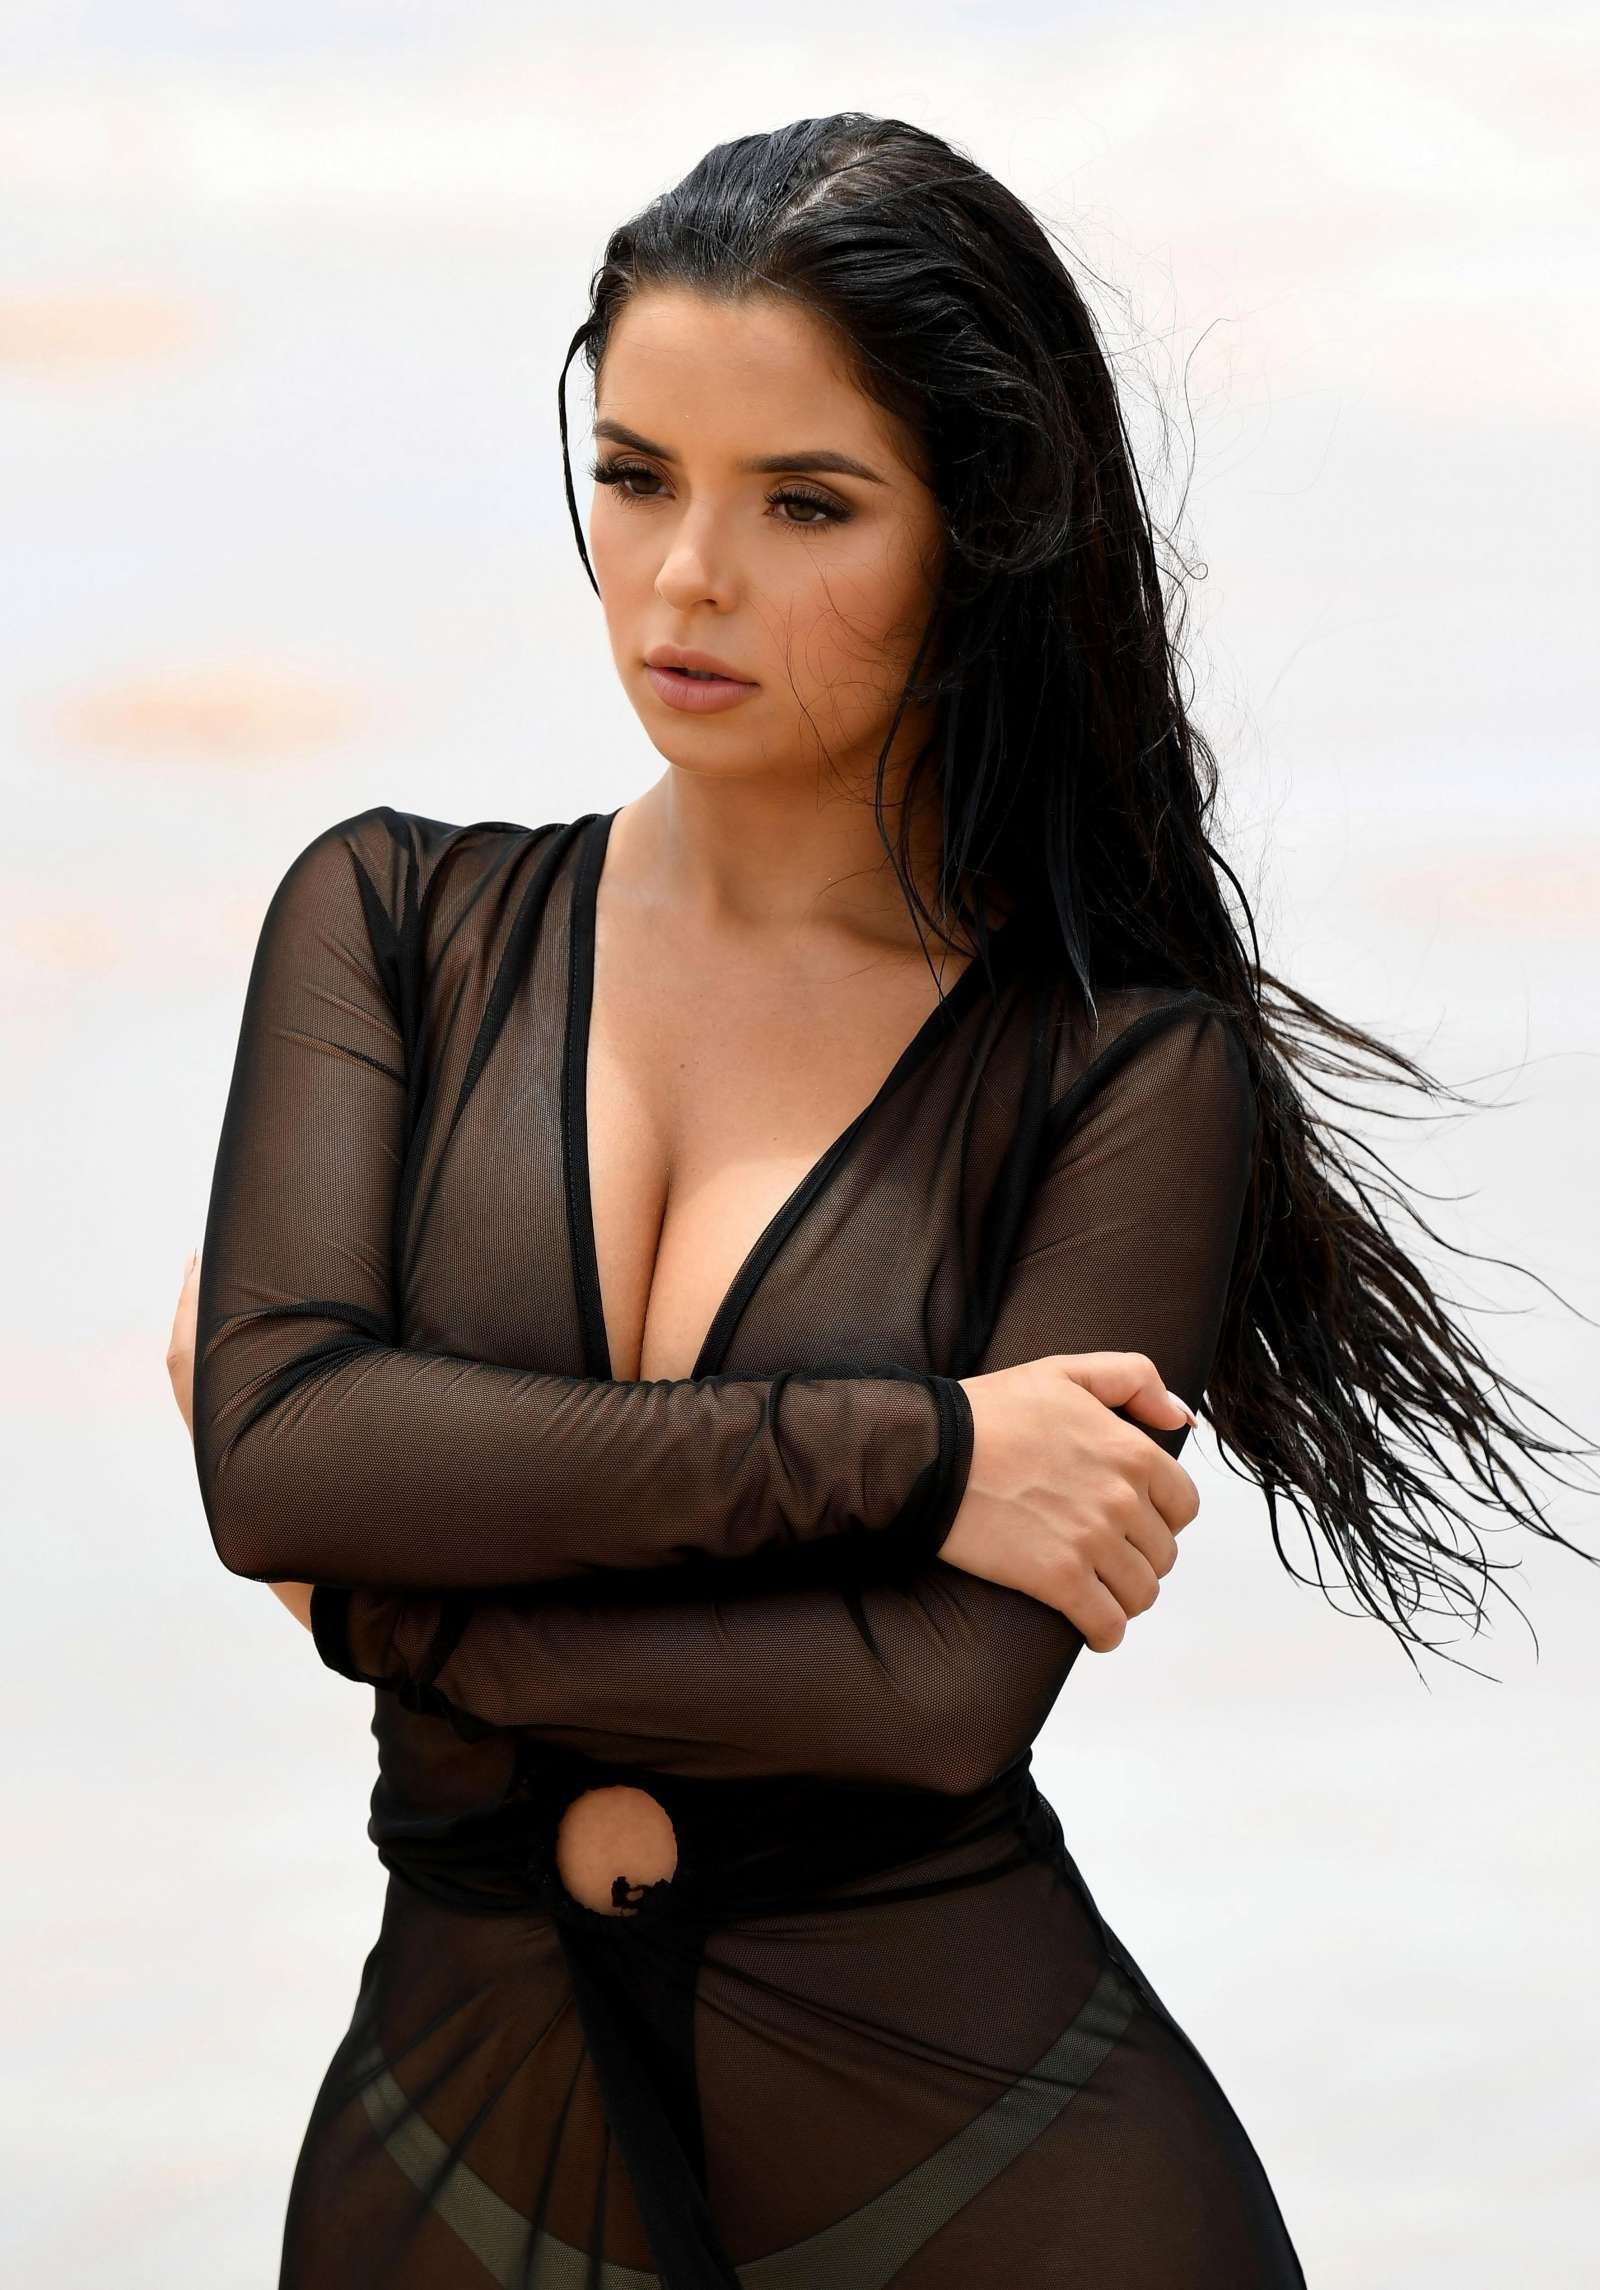 Demi Rose Photoshoot on a Beach in Cape Verde